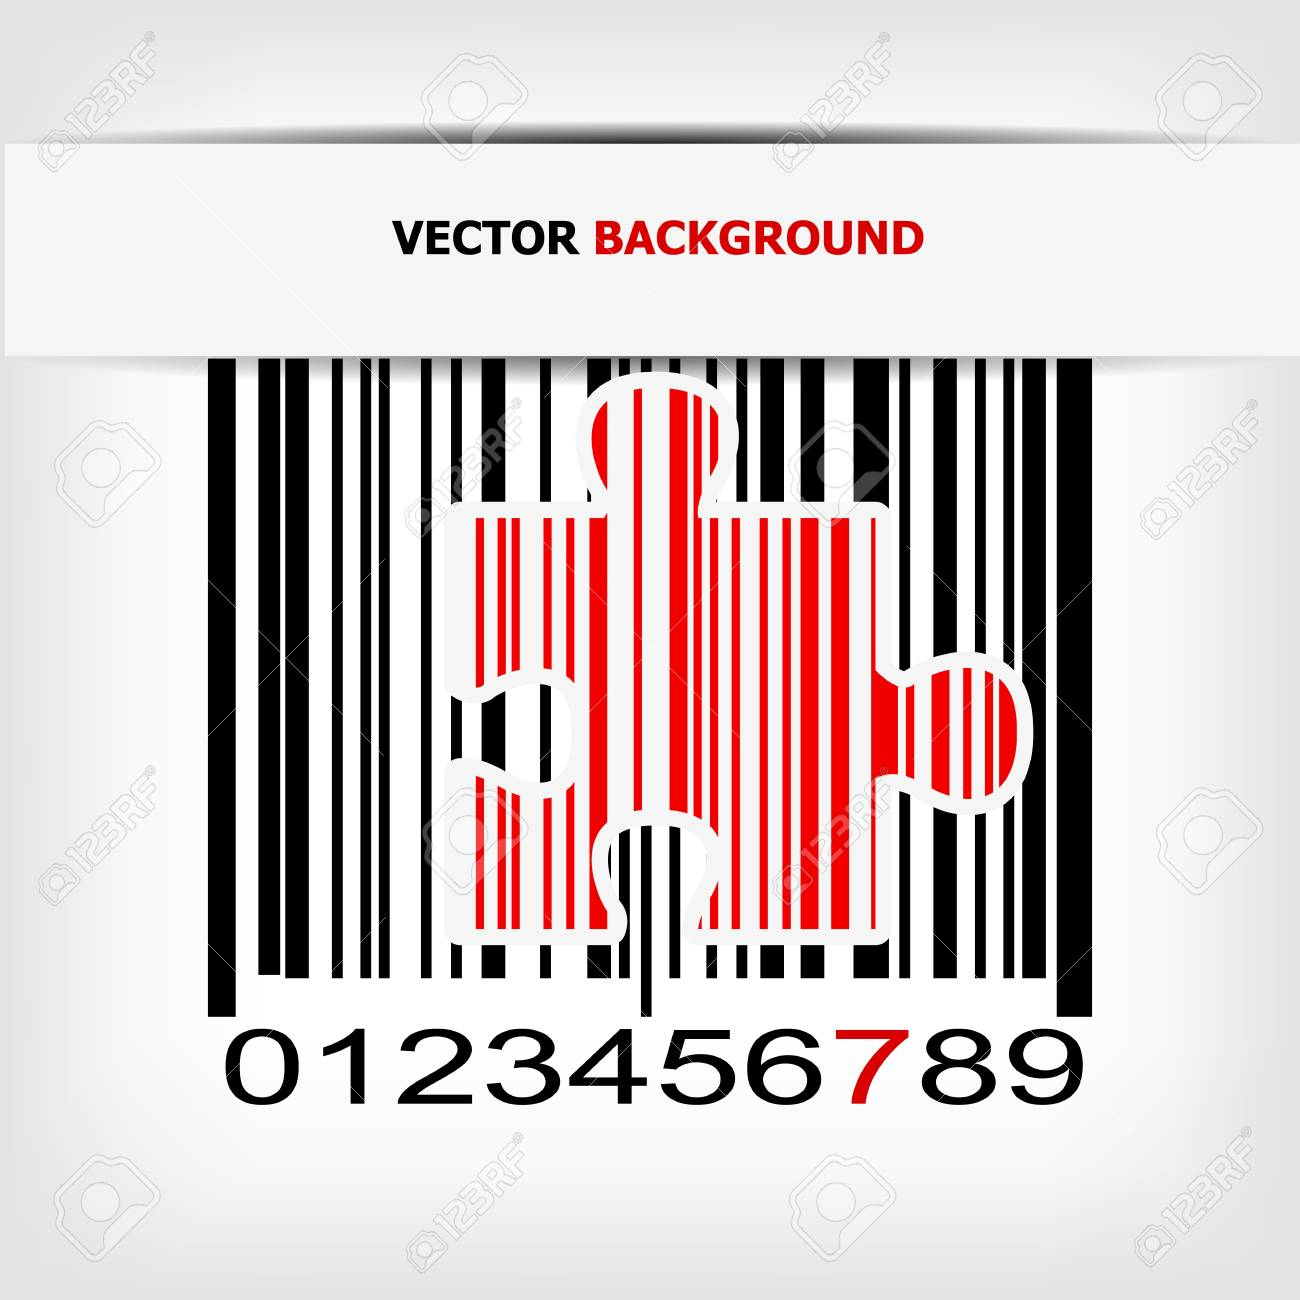 Barcode image with red strip - vector illustration Stock Vector - 17348079